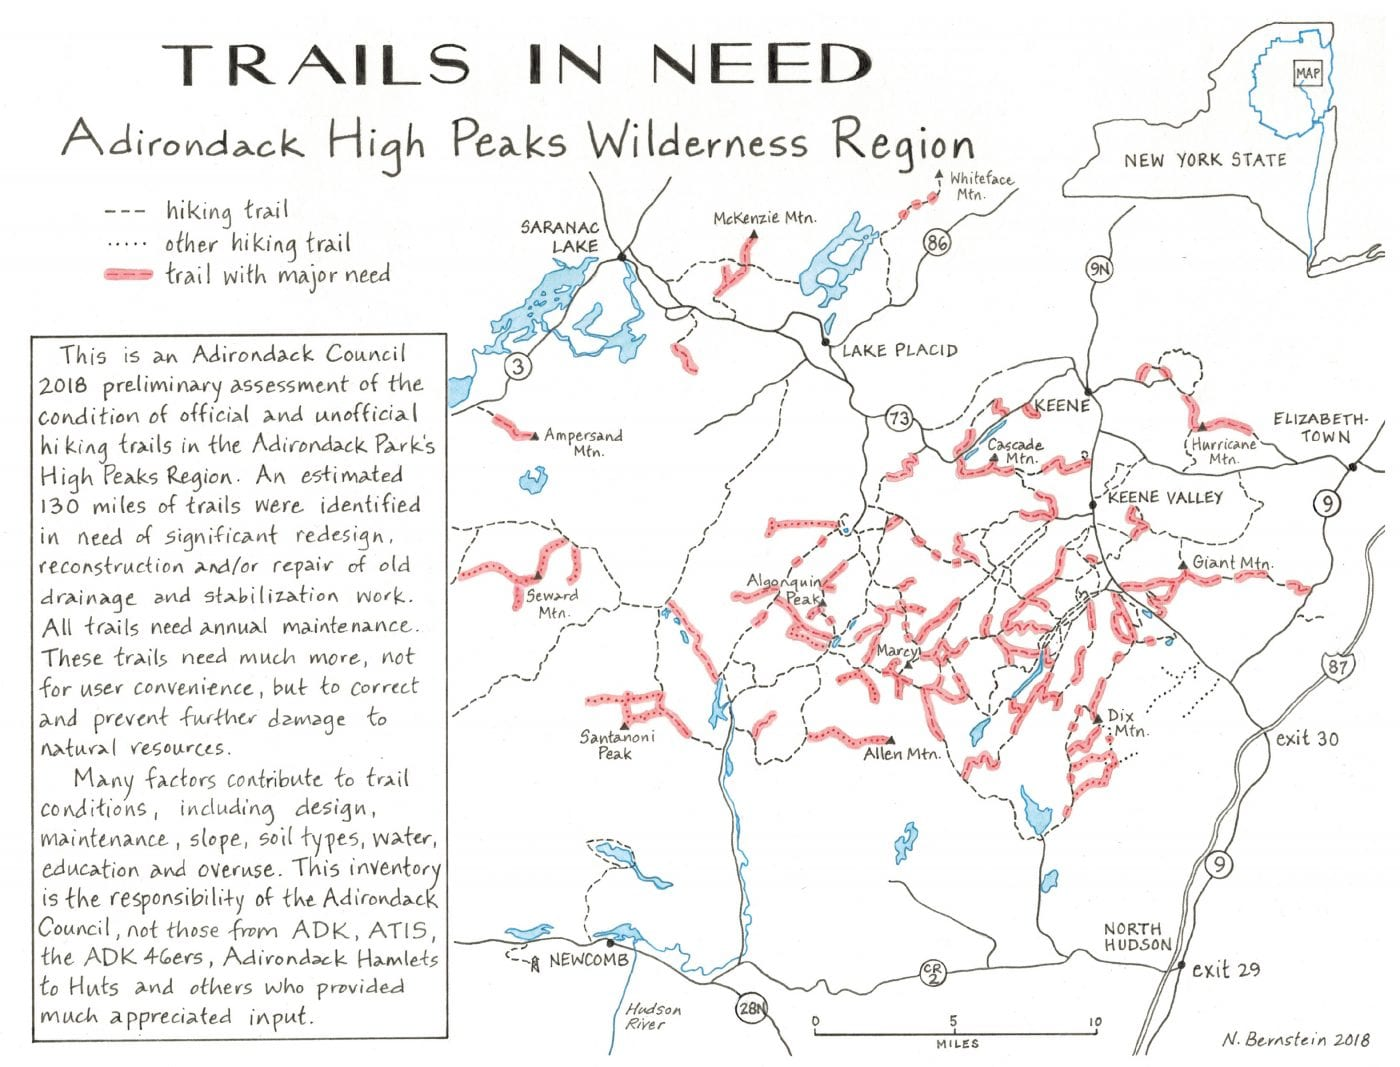 guide to adirondack trails high peaks region